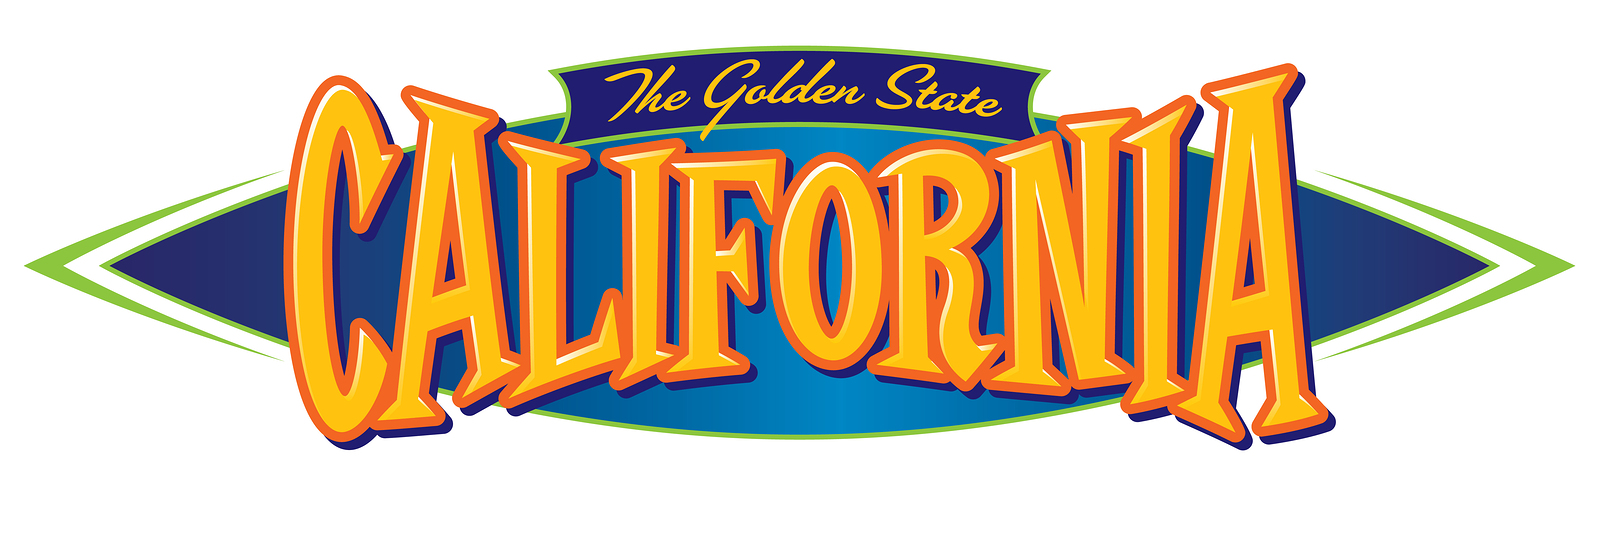 California The Golden State Vector Typographic Symbol with State Nickname Slogan